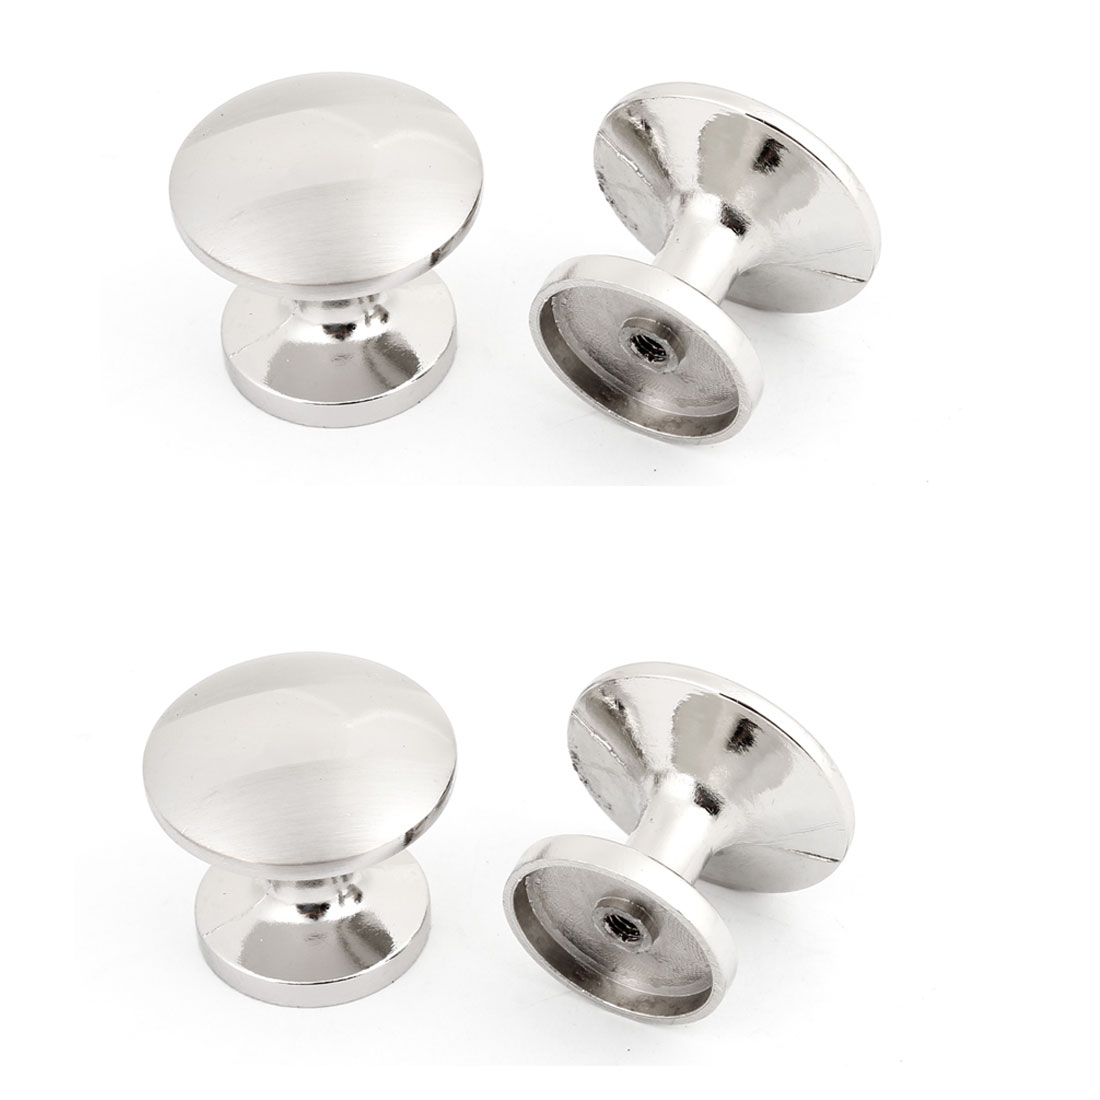 4 Pcs Drawer Fitting Silver Tone 28mm Dia Round Metal Knob Handle